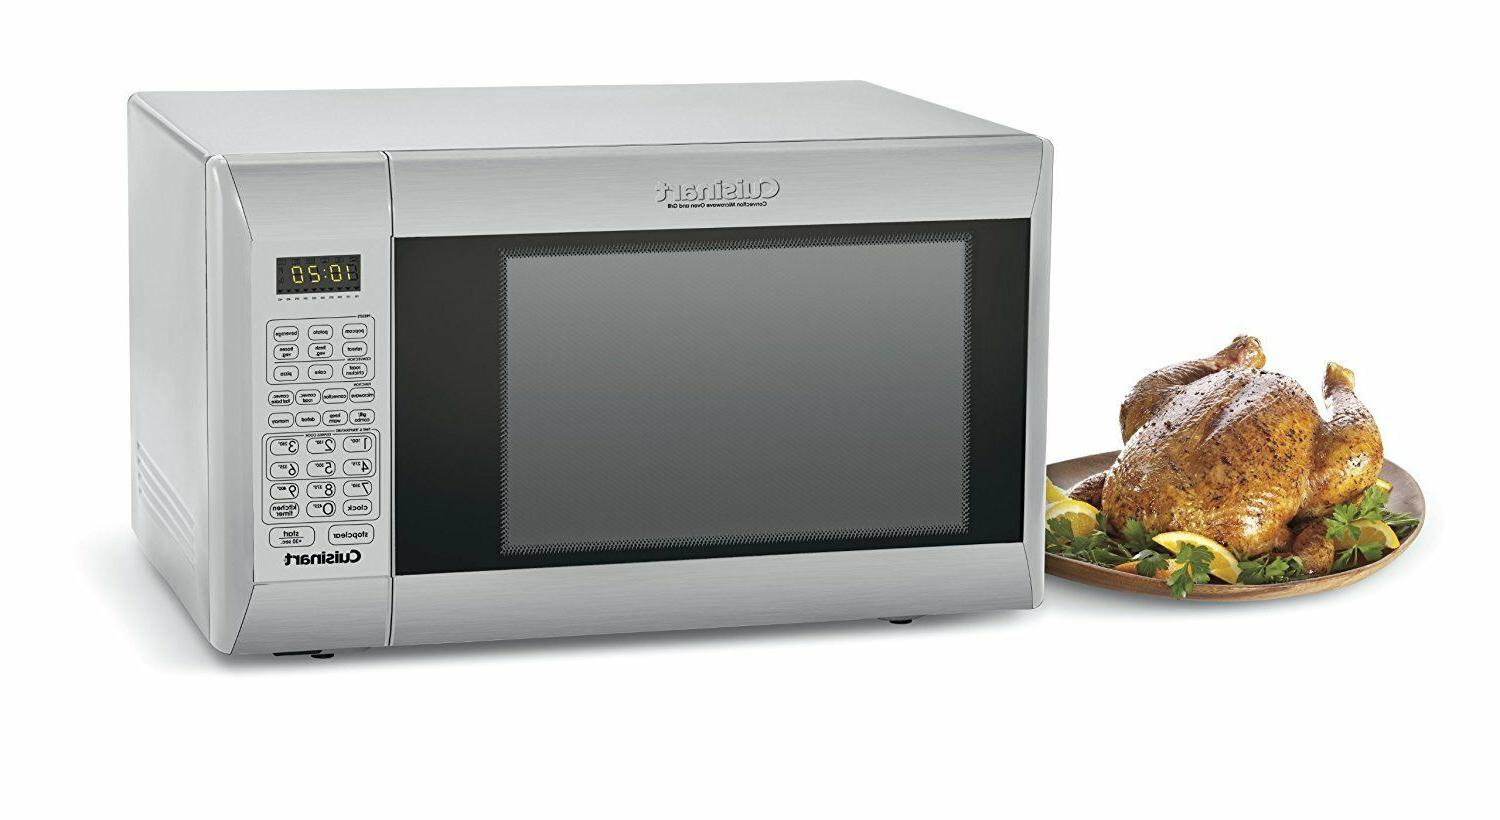 Cuisinart CMW-200 1.2 Cubic Foot Convection Microwave Oven w